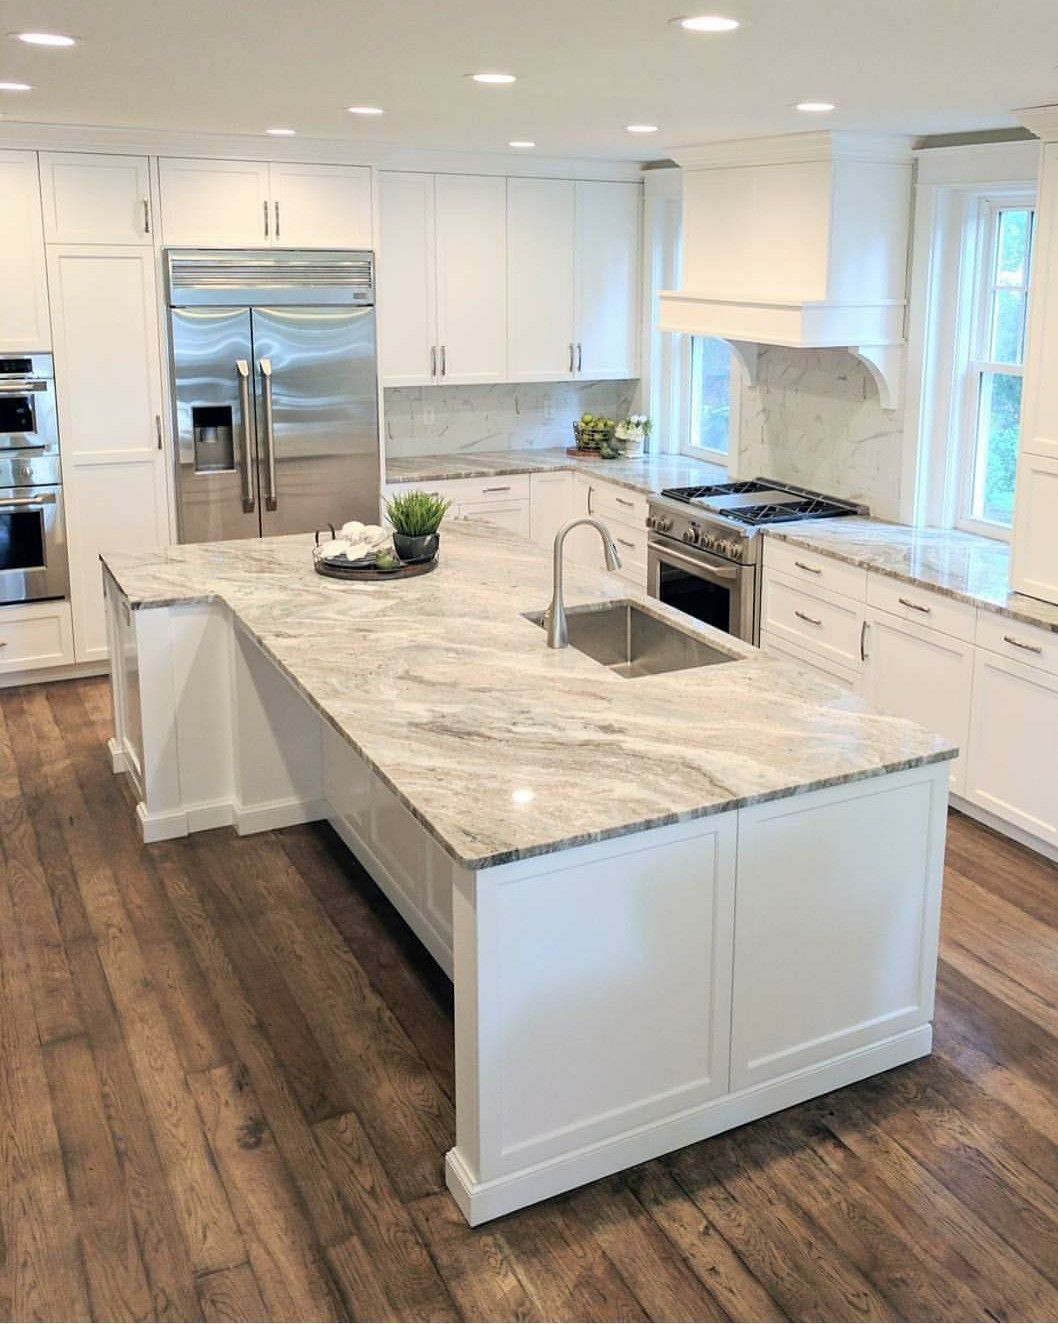 33 Amazing and Stylist Kitchen Decor Countertops Ideas on Budget #countertop Cab...#amazing #budget #cab #countertop #countertops #decor #ideas #kitchen #stylist